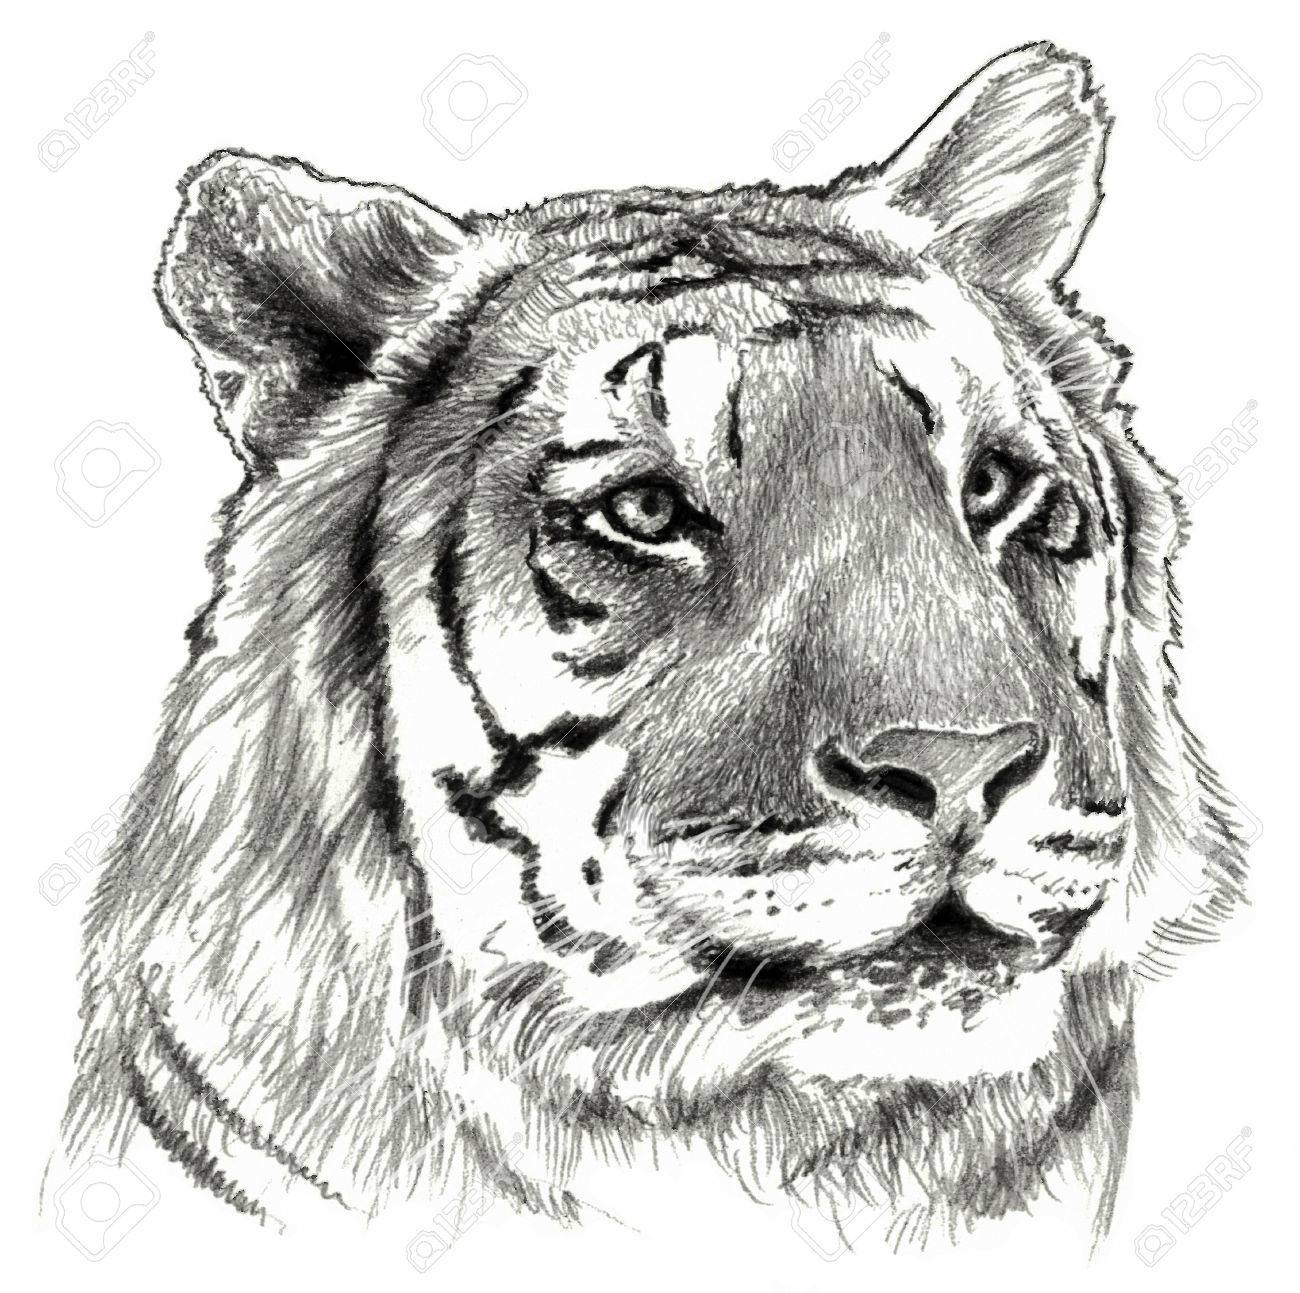 Stock photo tigers head isolated on white background pencil drawing monochrome image